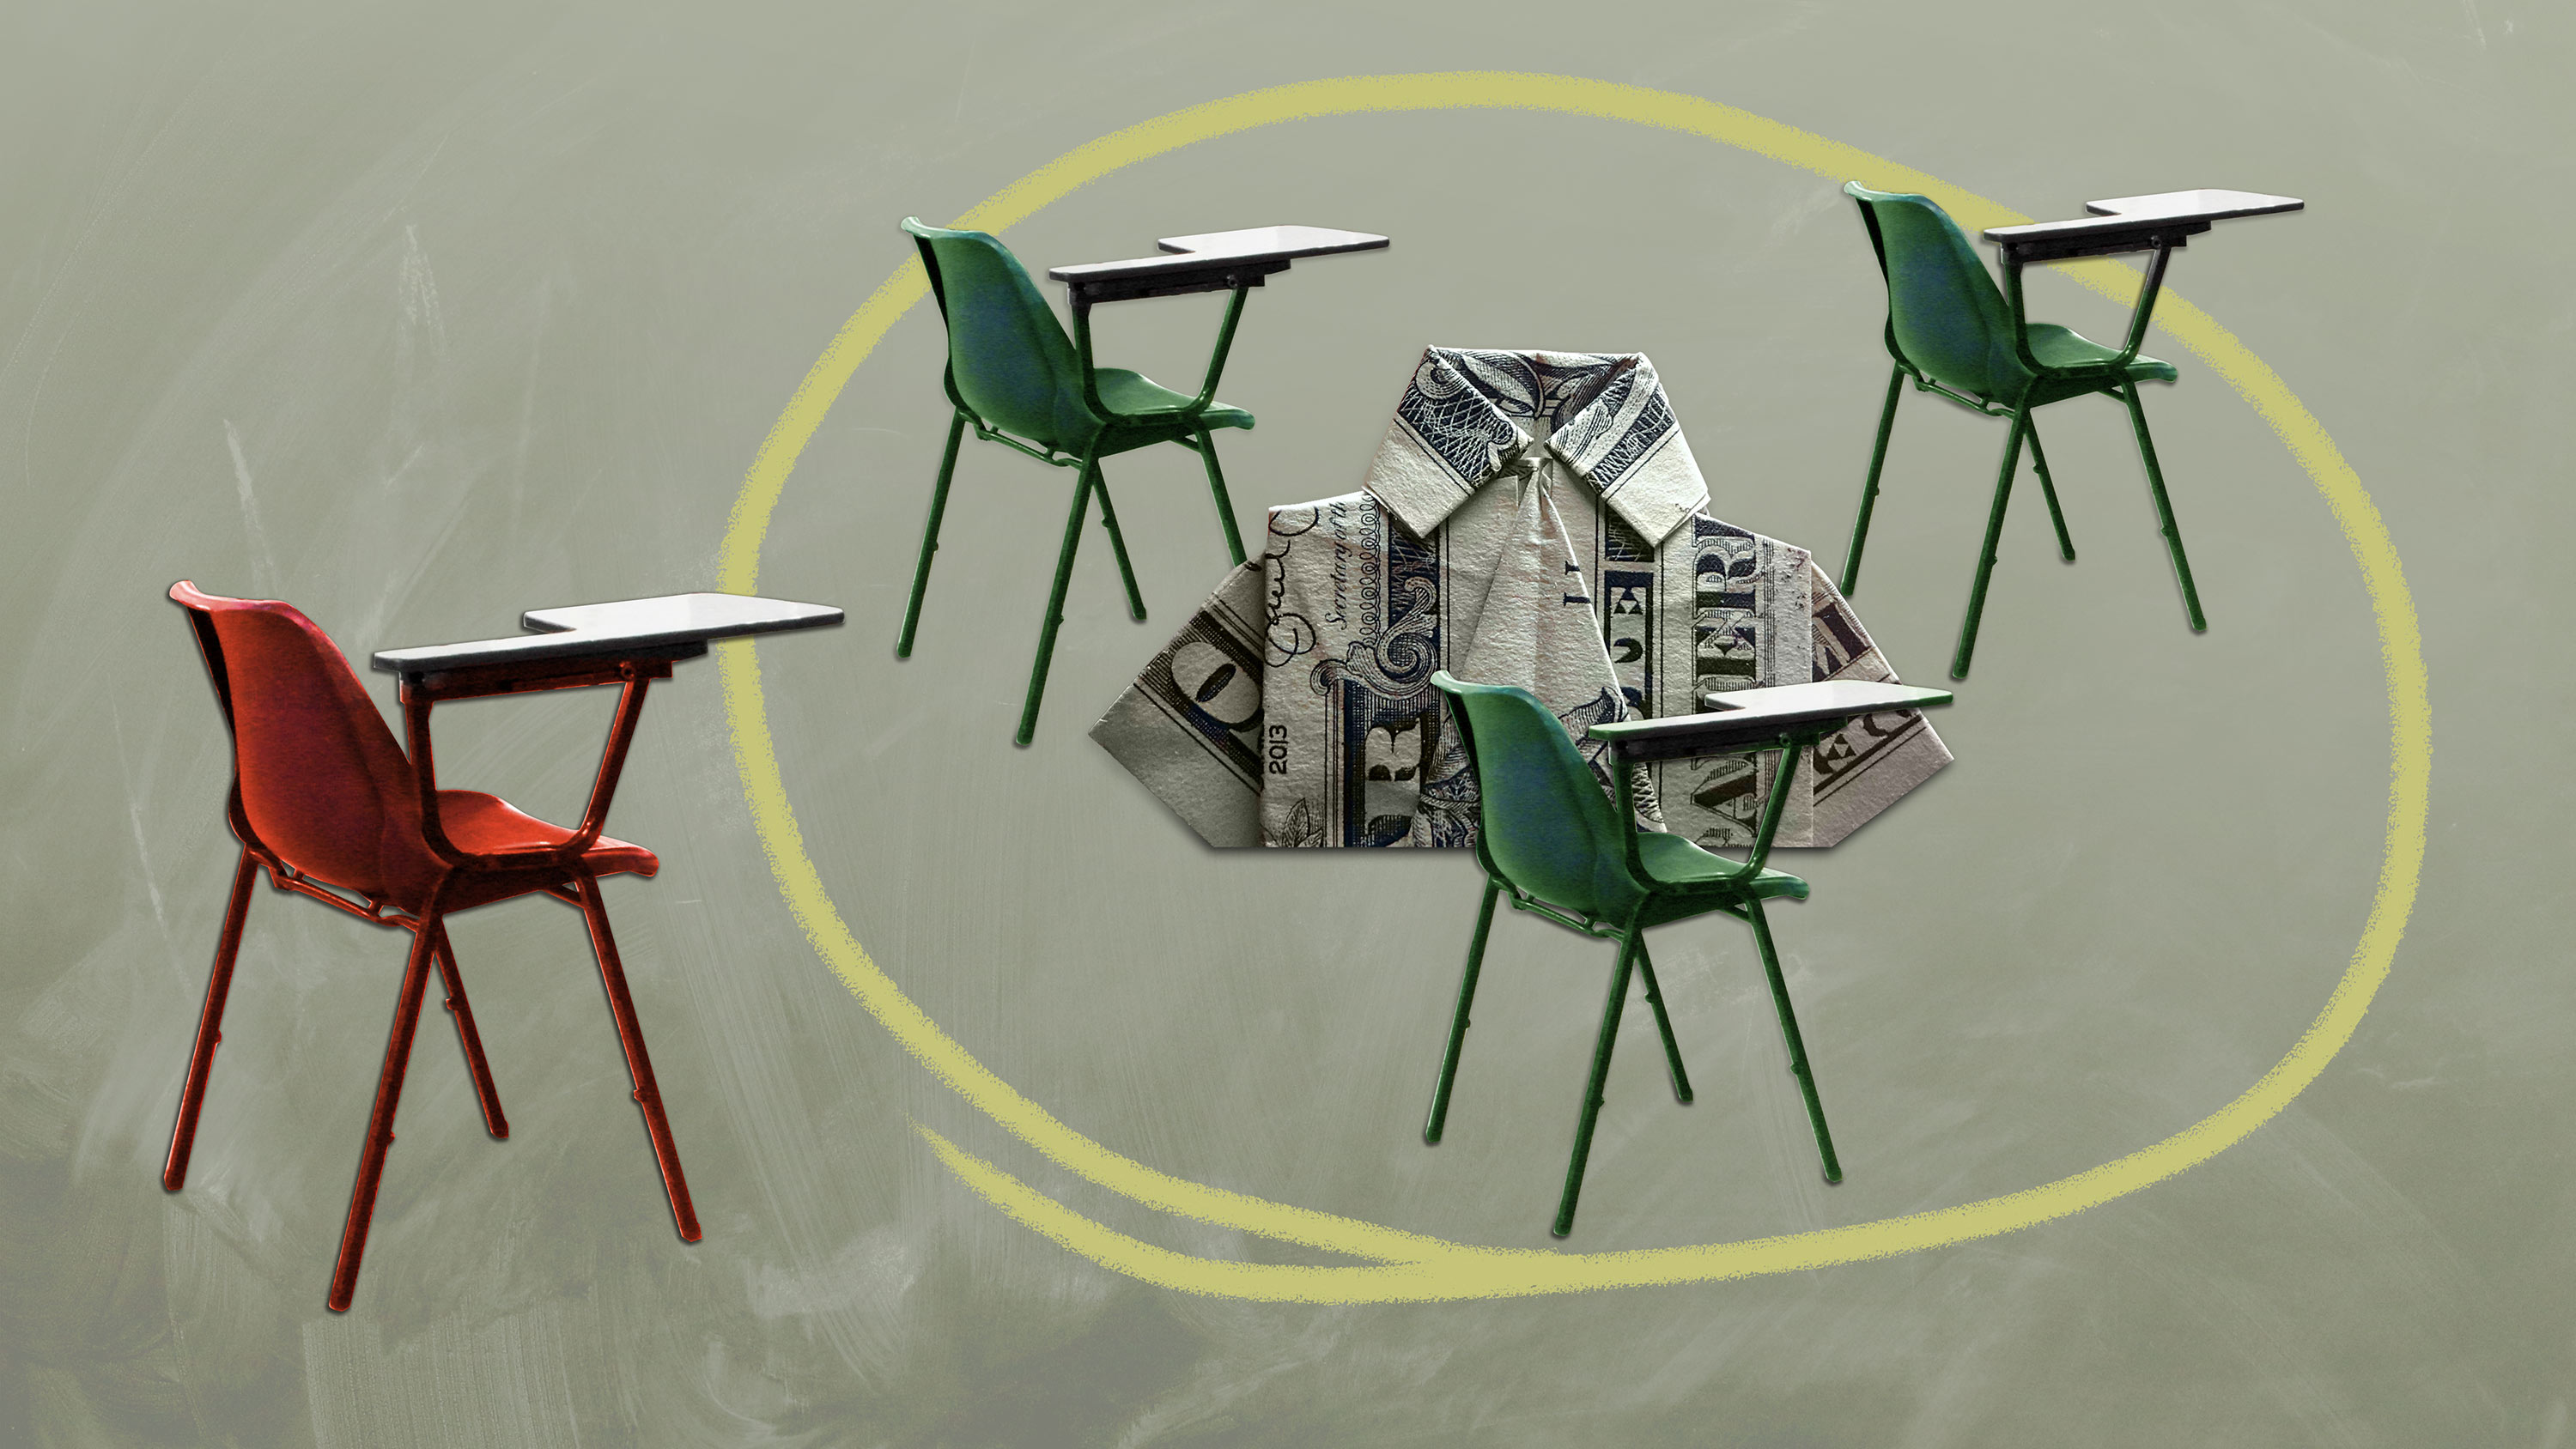 image of three desks with a shirt in the middle made of a dollar bill and red chair all alone in the corner pandemic pods microschool homeschool pod copod